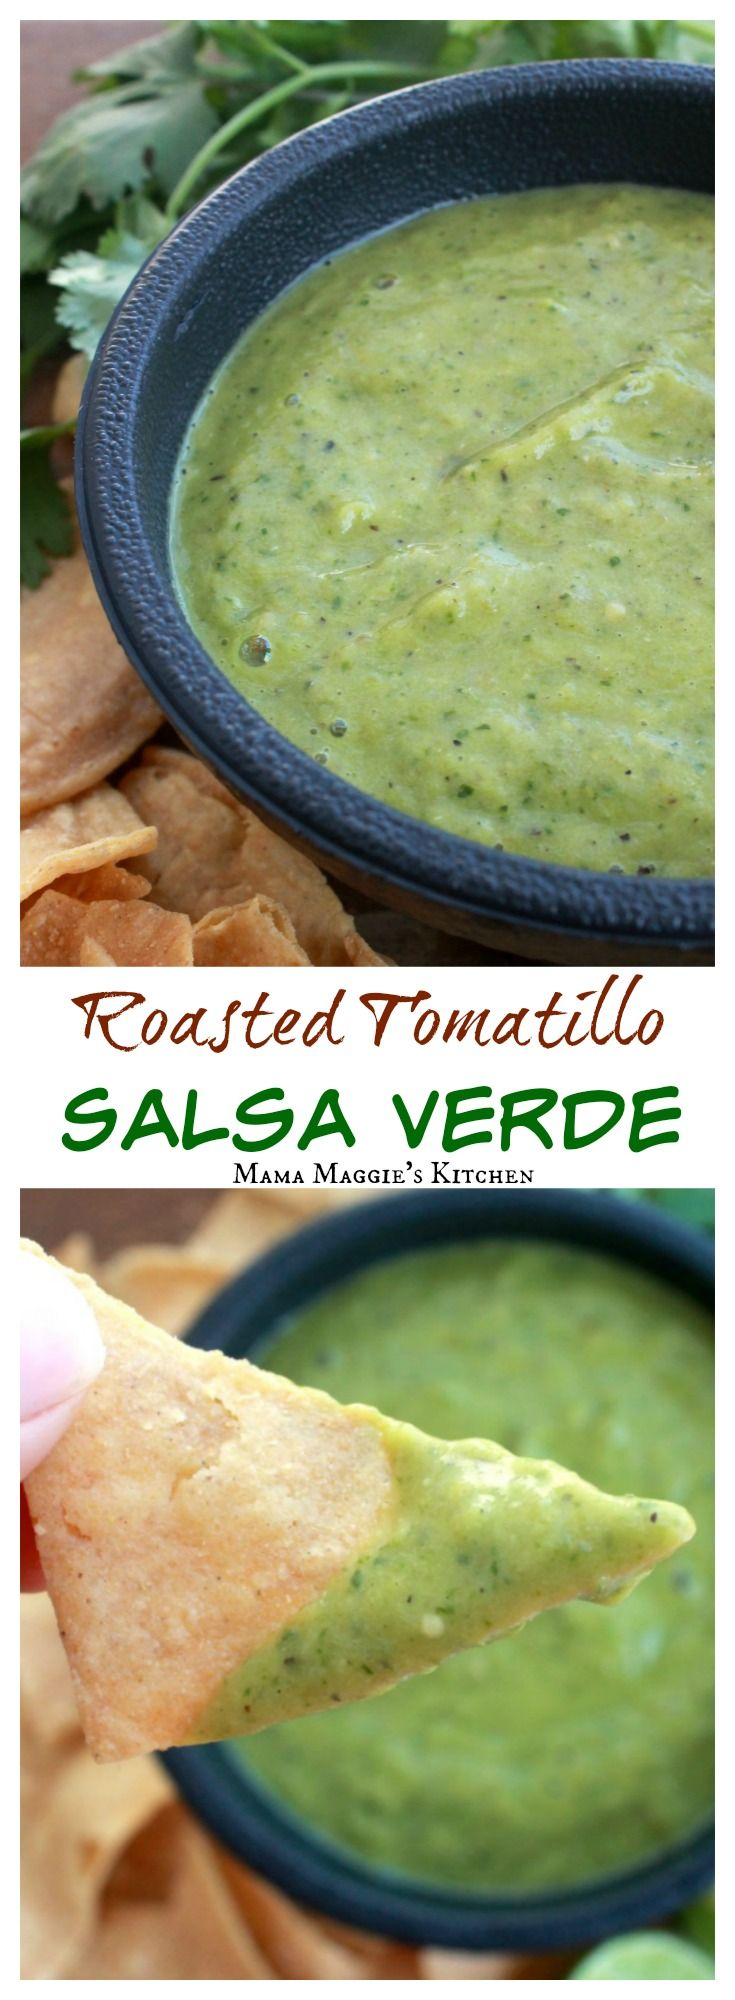 Roasted Tomatillo Salsa Verde is incredibly easy to make. Delicious and savory. Perfect with chips or as a topping for tacos. By Mama Maggie's Kitchen